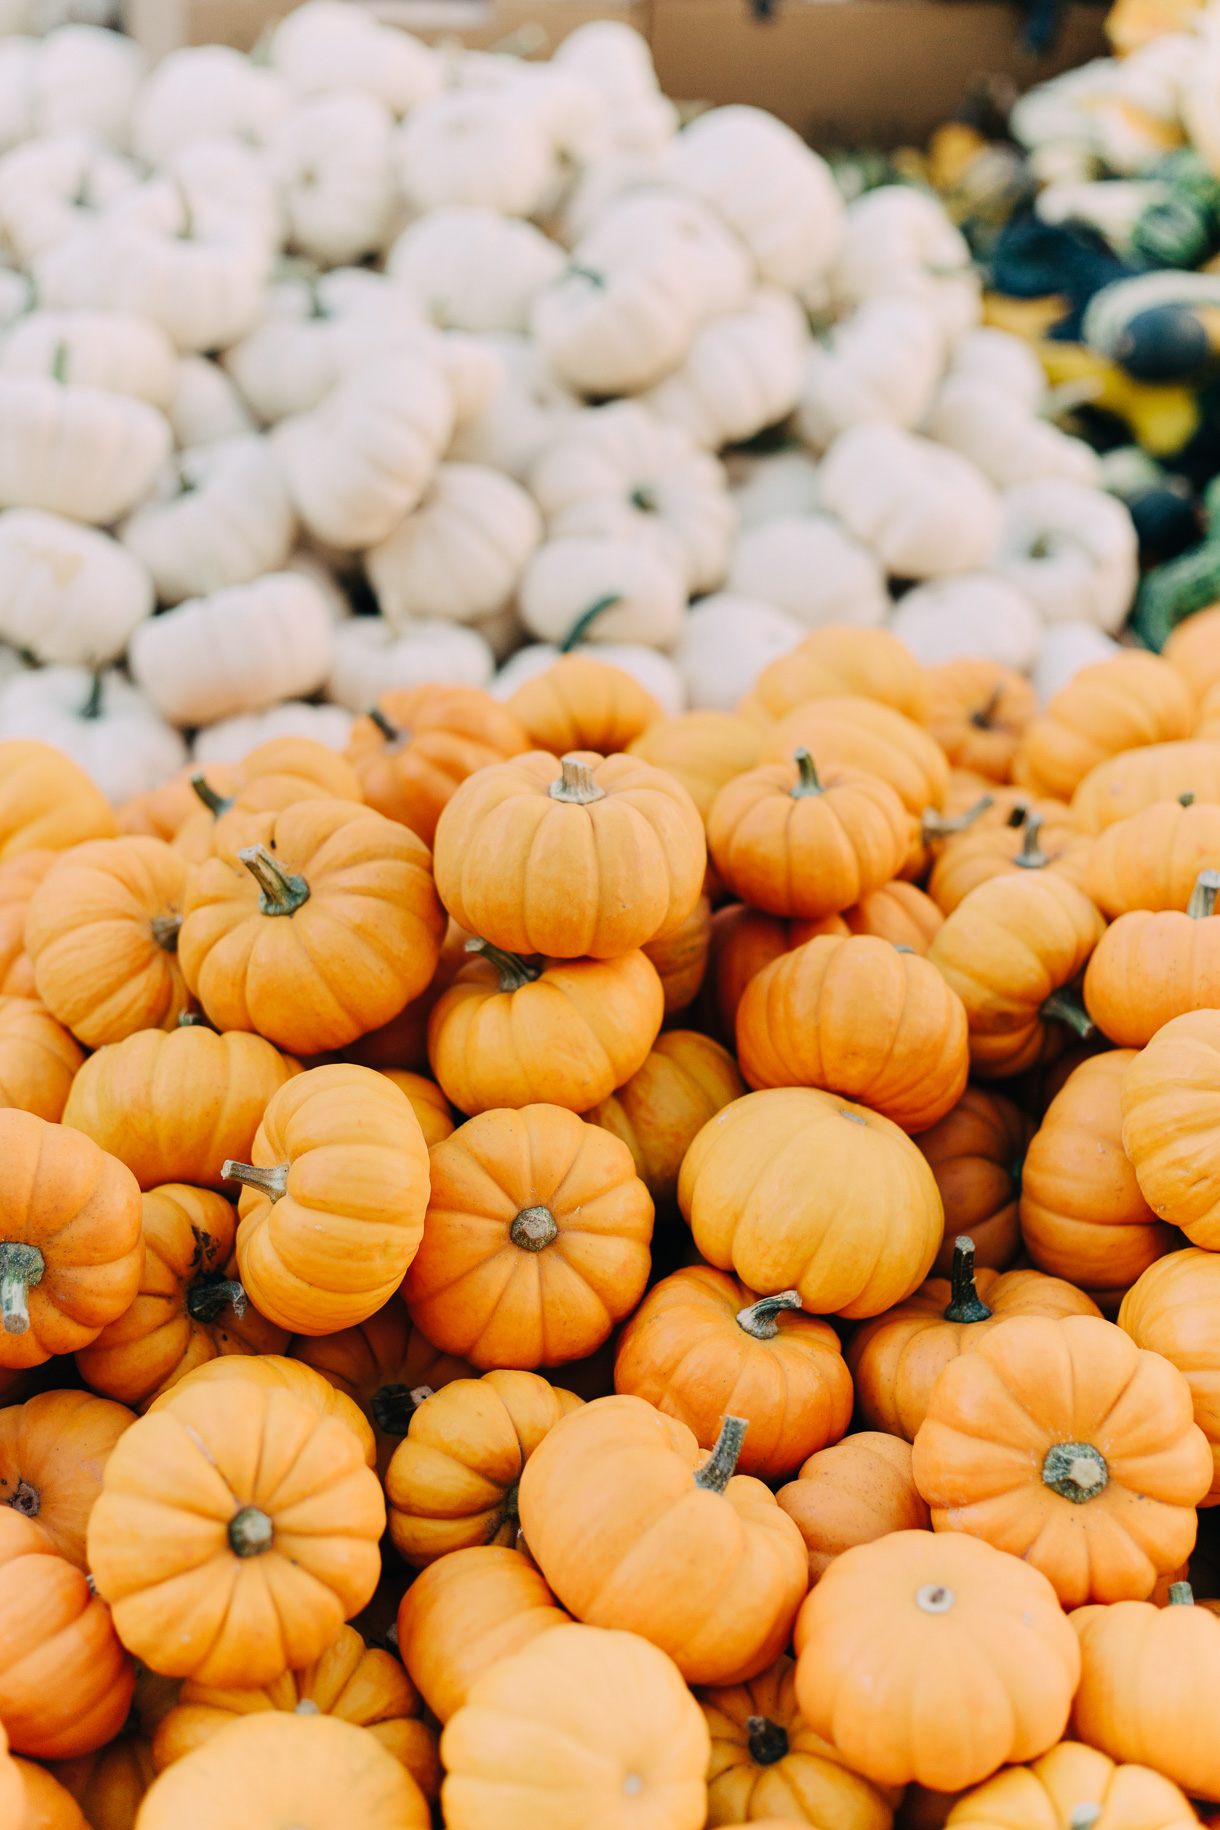 fall-at-union-square-farmers-market-3025